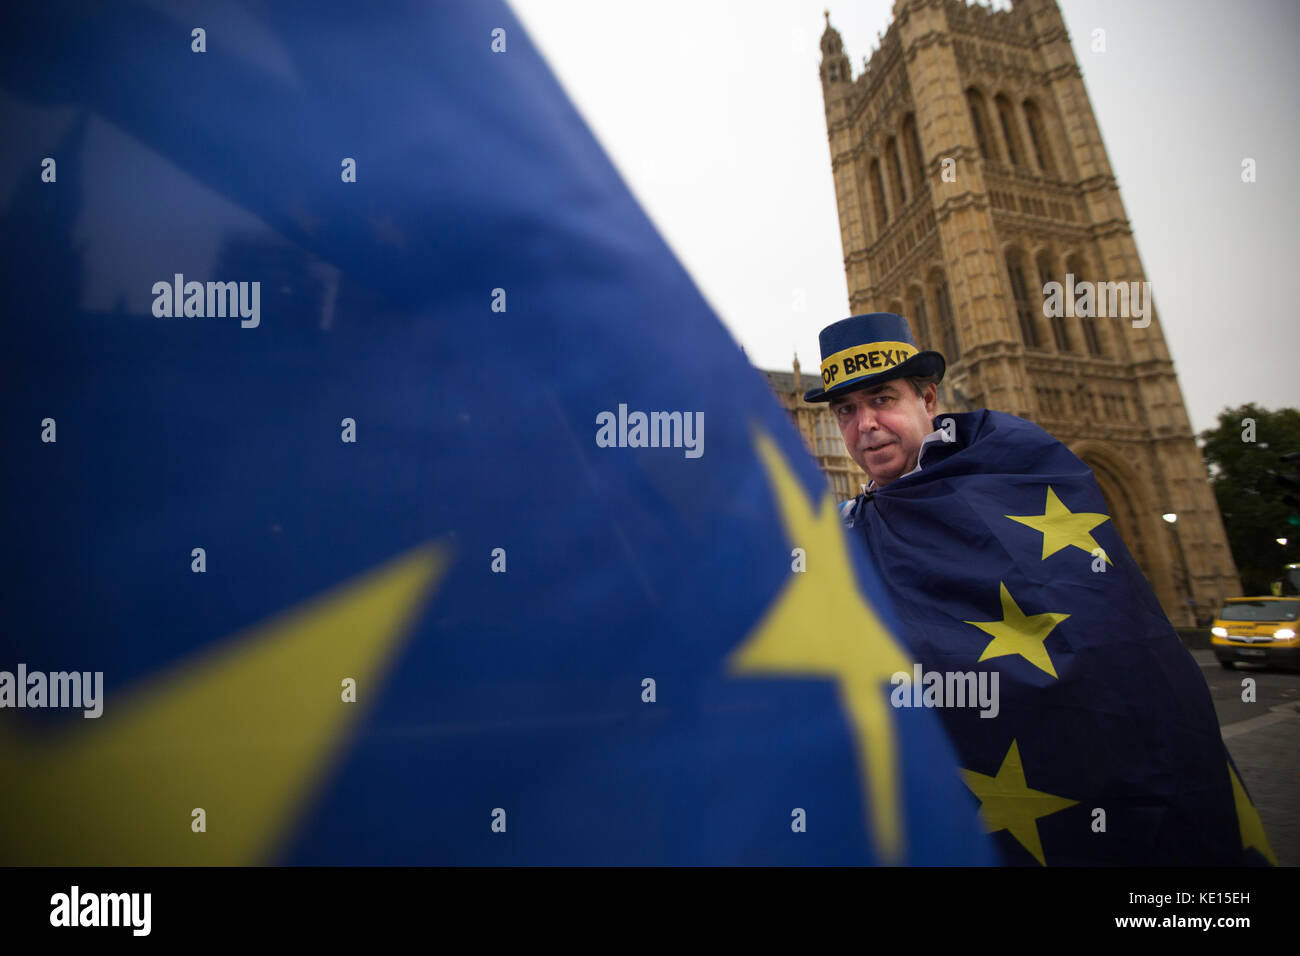 Anti-Brexit vigil outside the Houses of Parliament, London, England, United Kingdom - Stock Image